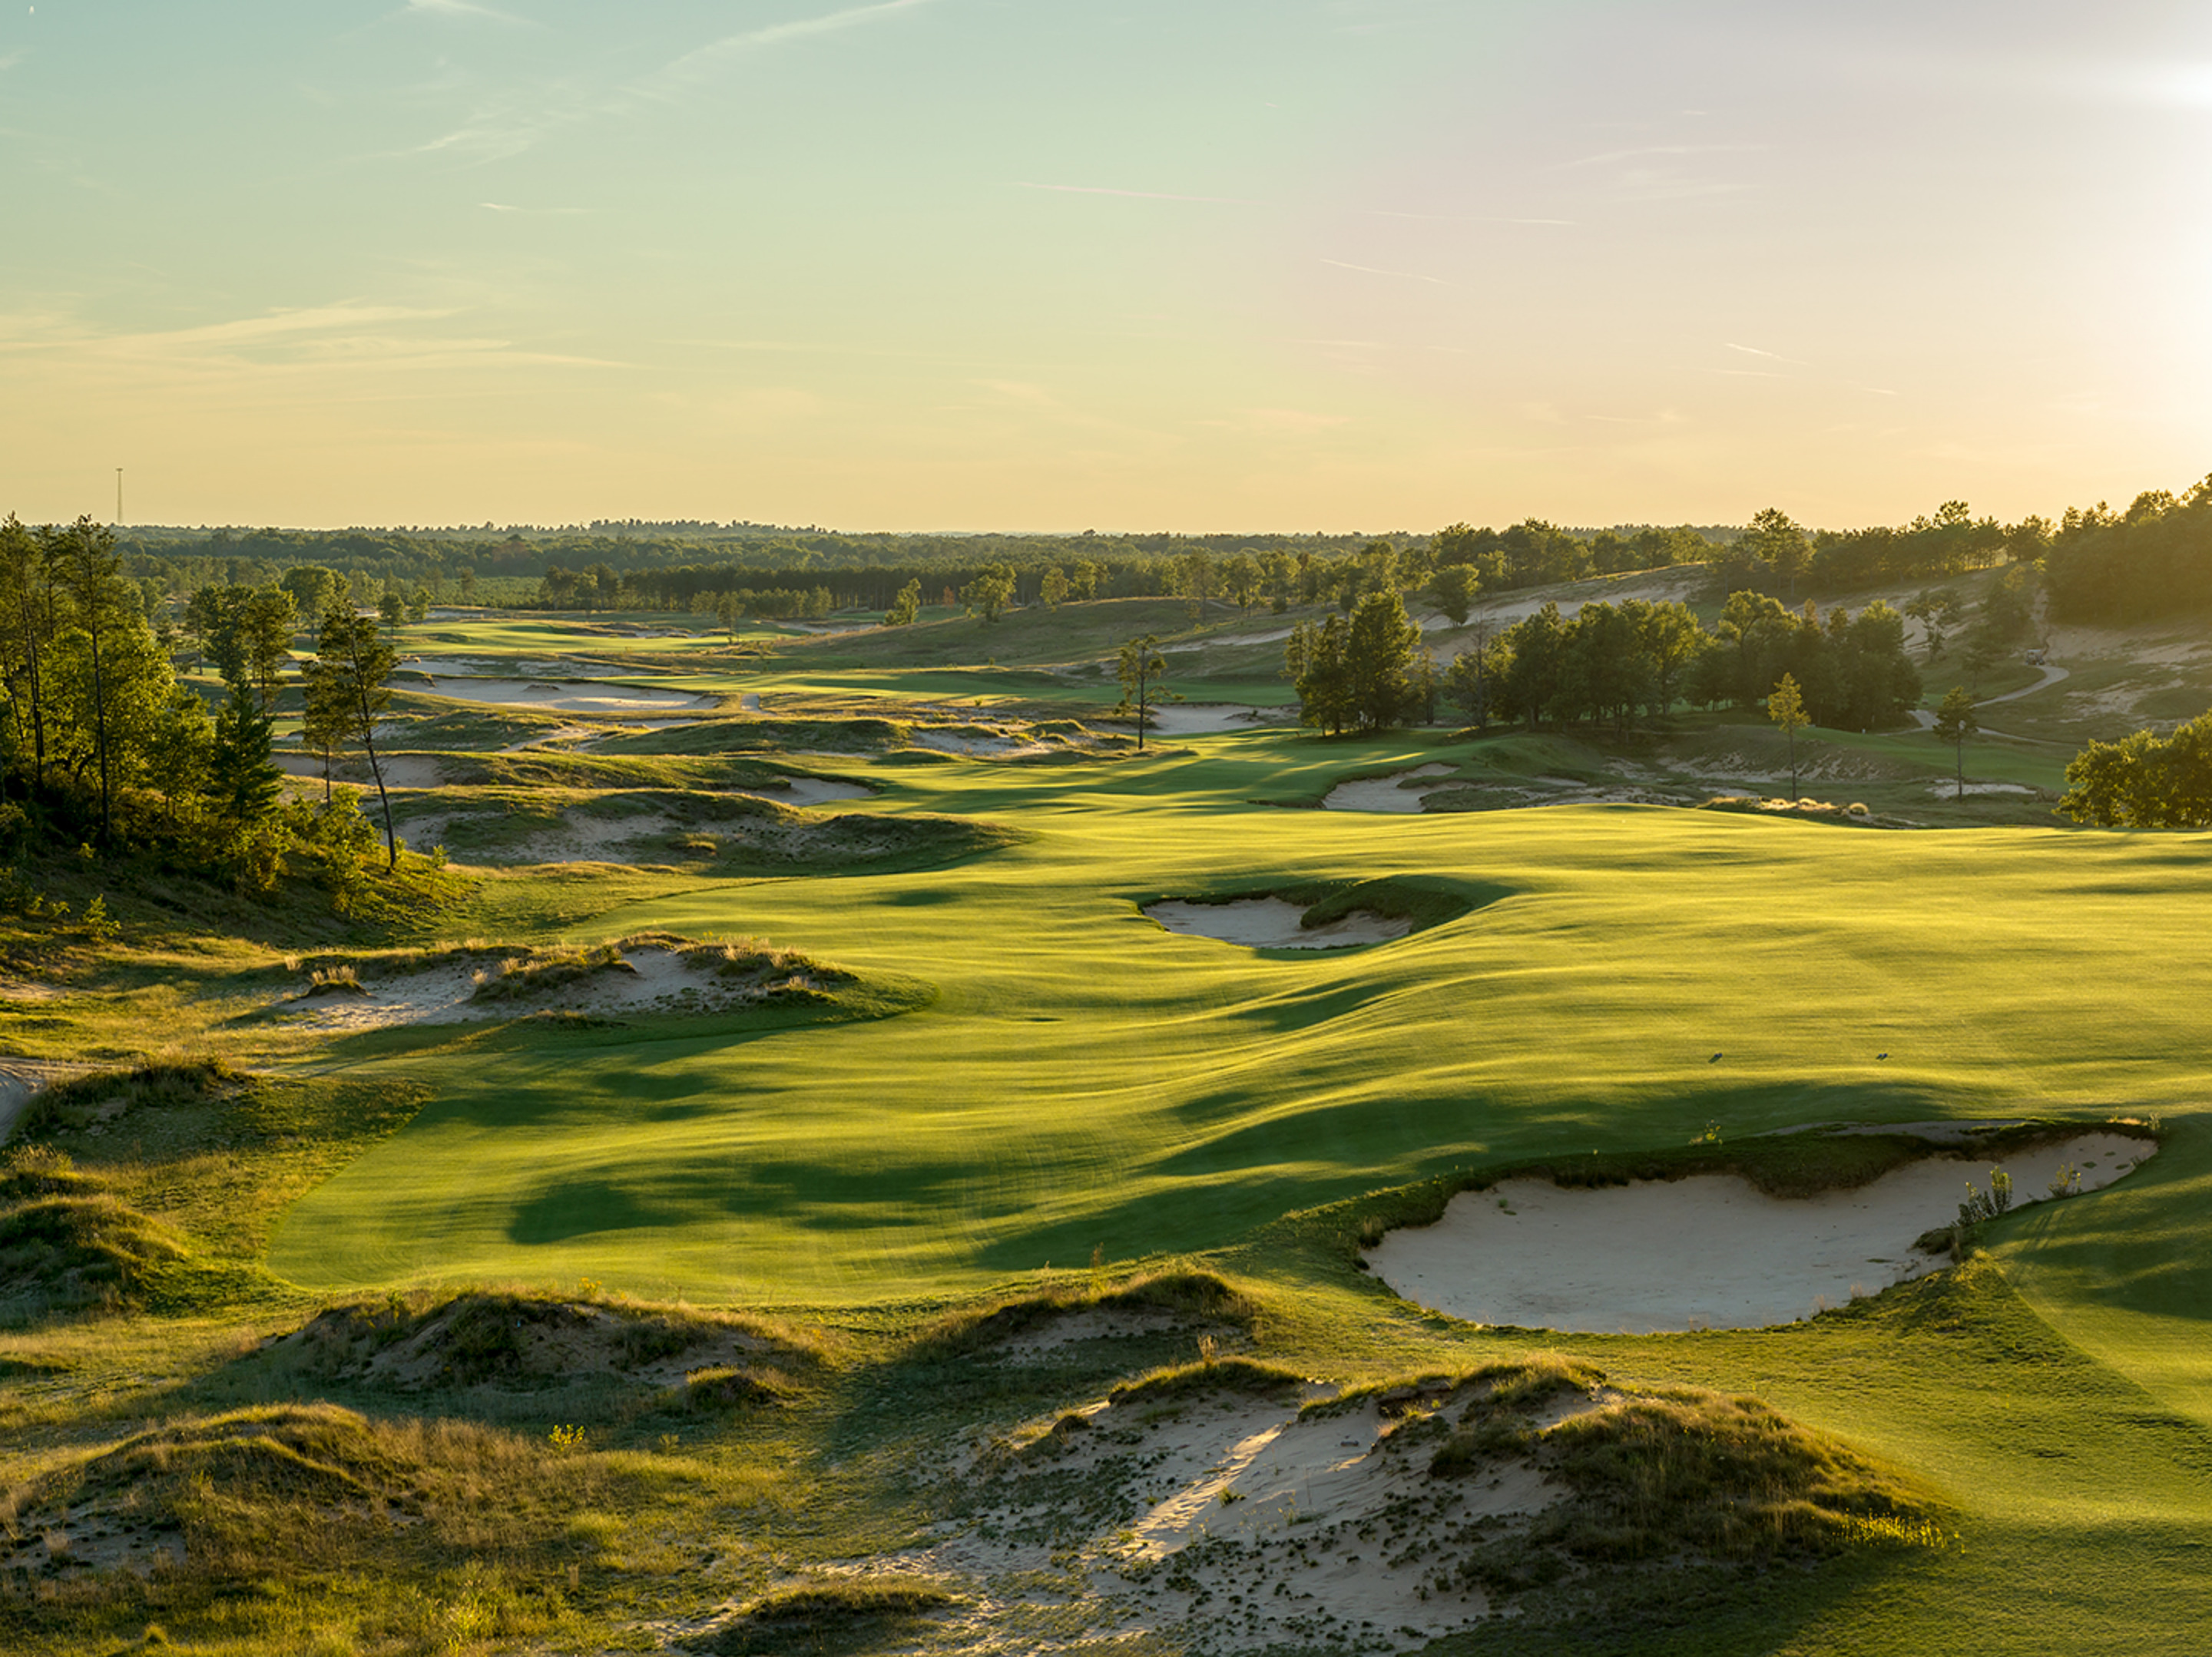 10th Hole, Sand Valley